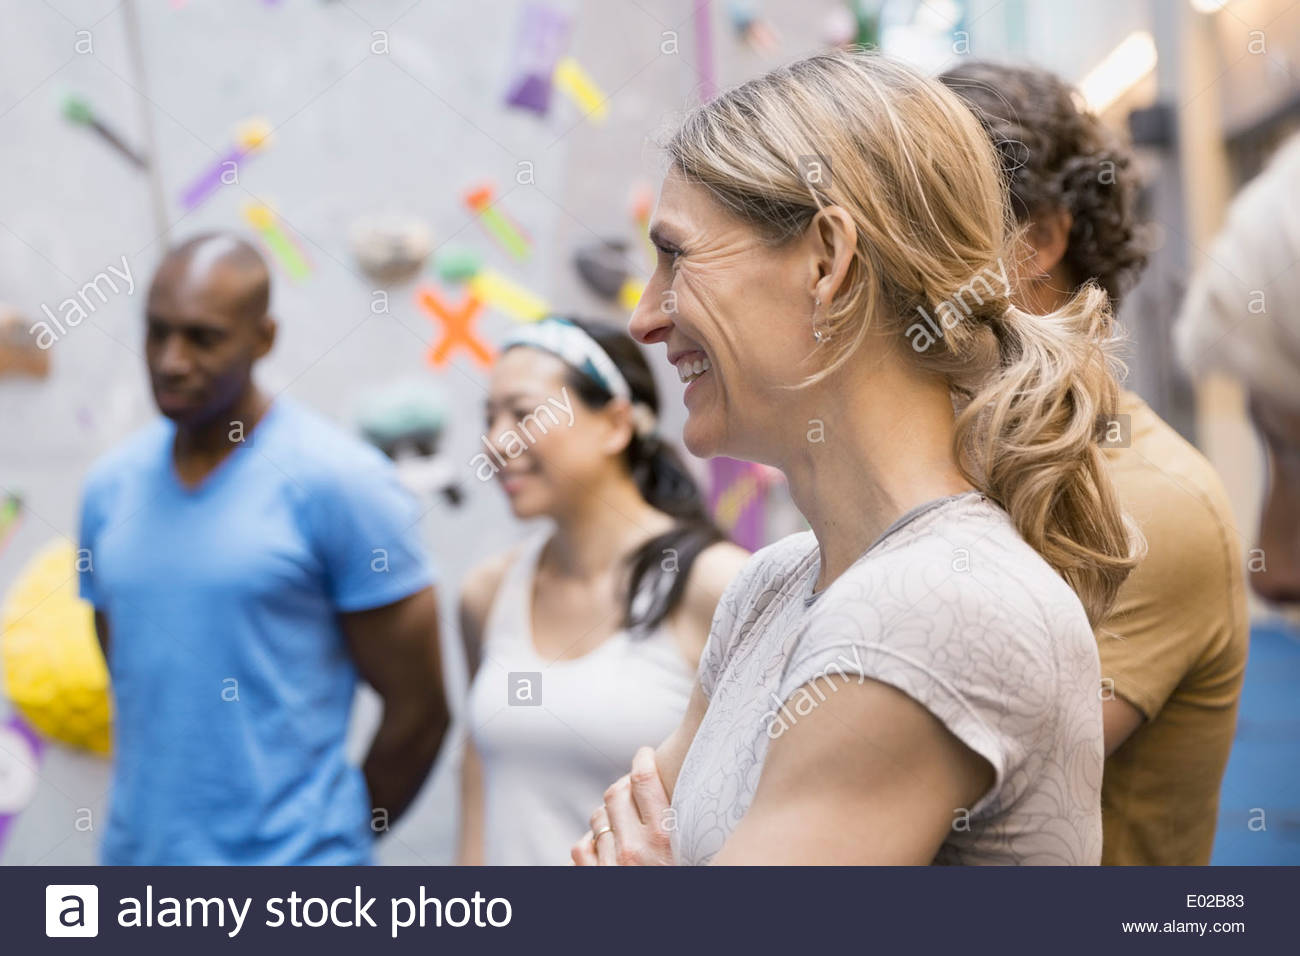 Group at rock climbing wall - Stock Image